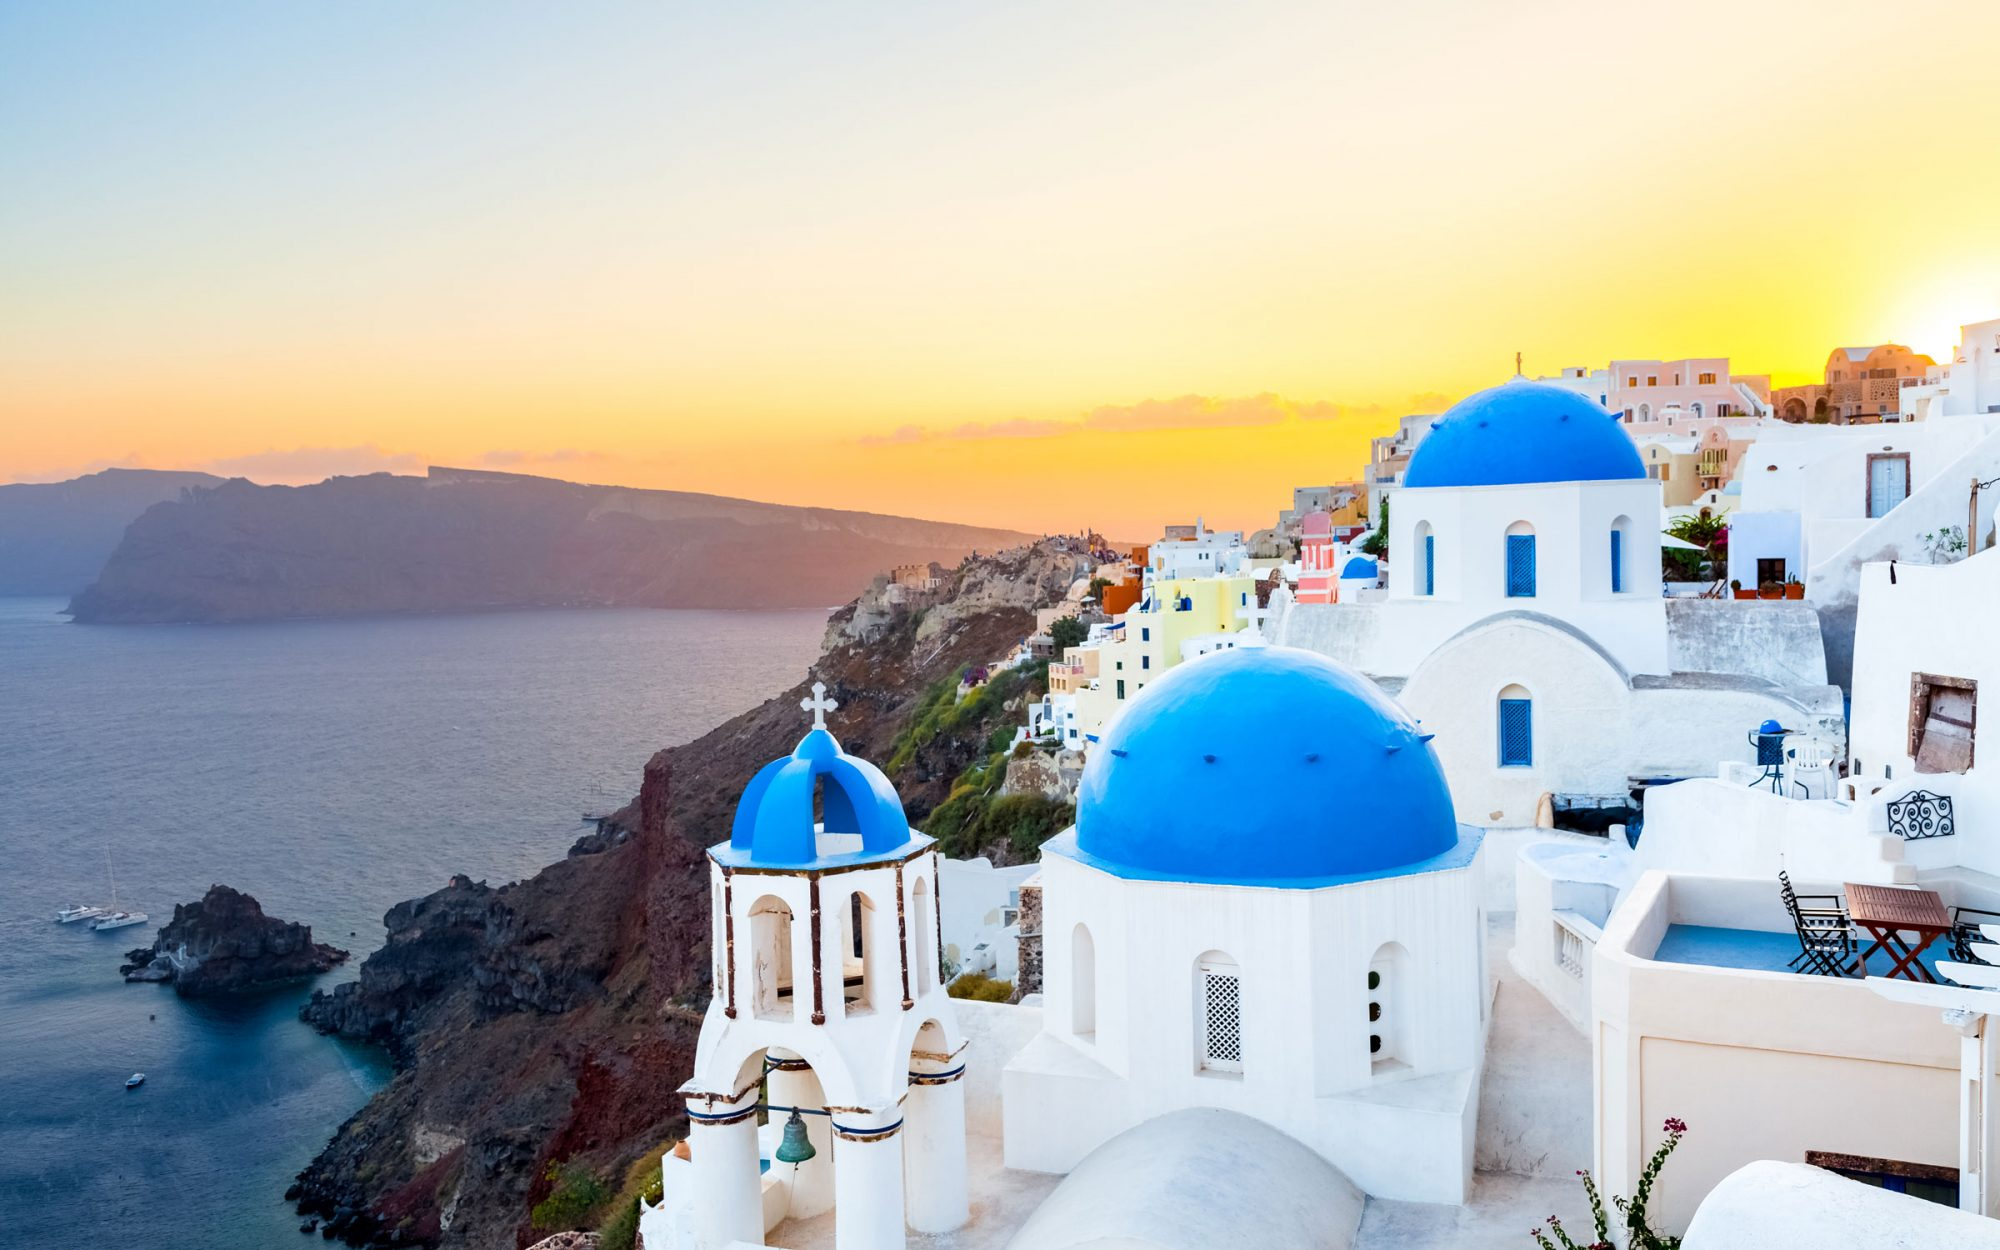 As if we needed another reason to visit Santorini.